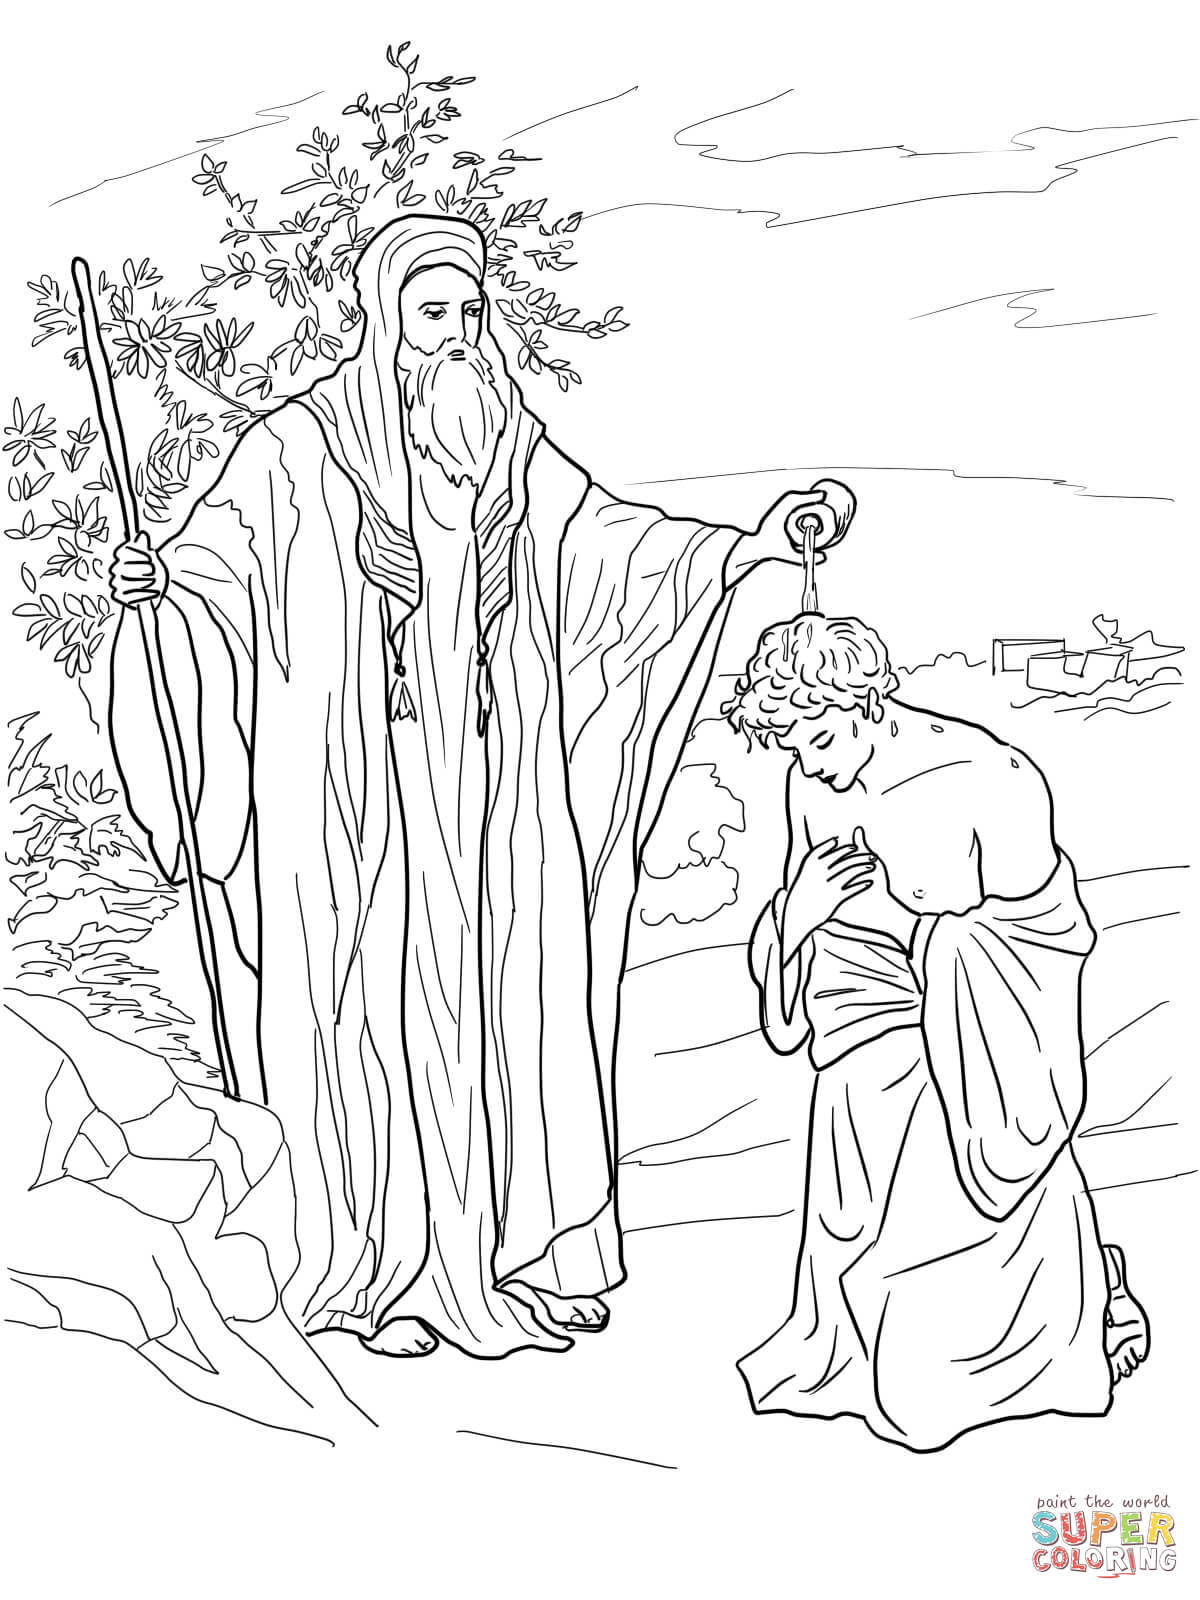 hannah and samuel coloring pages - photo#19